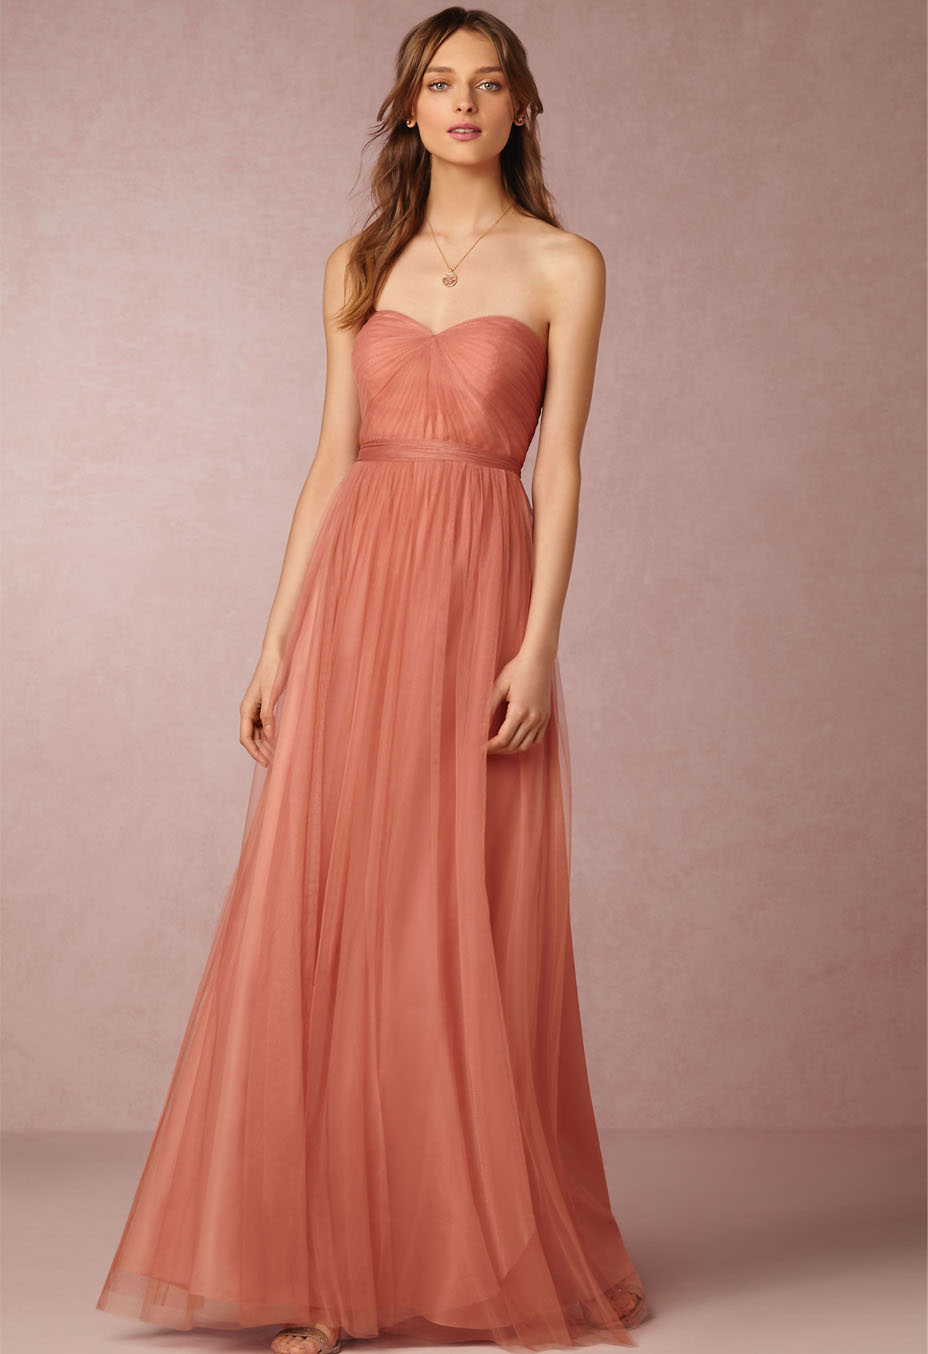 Get This Dress And Accessories At Its Fashion Metro In: Green Wedding Shoes